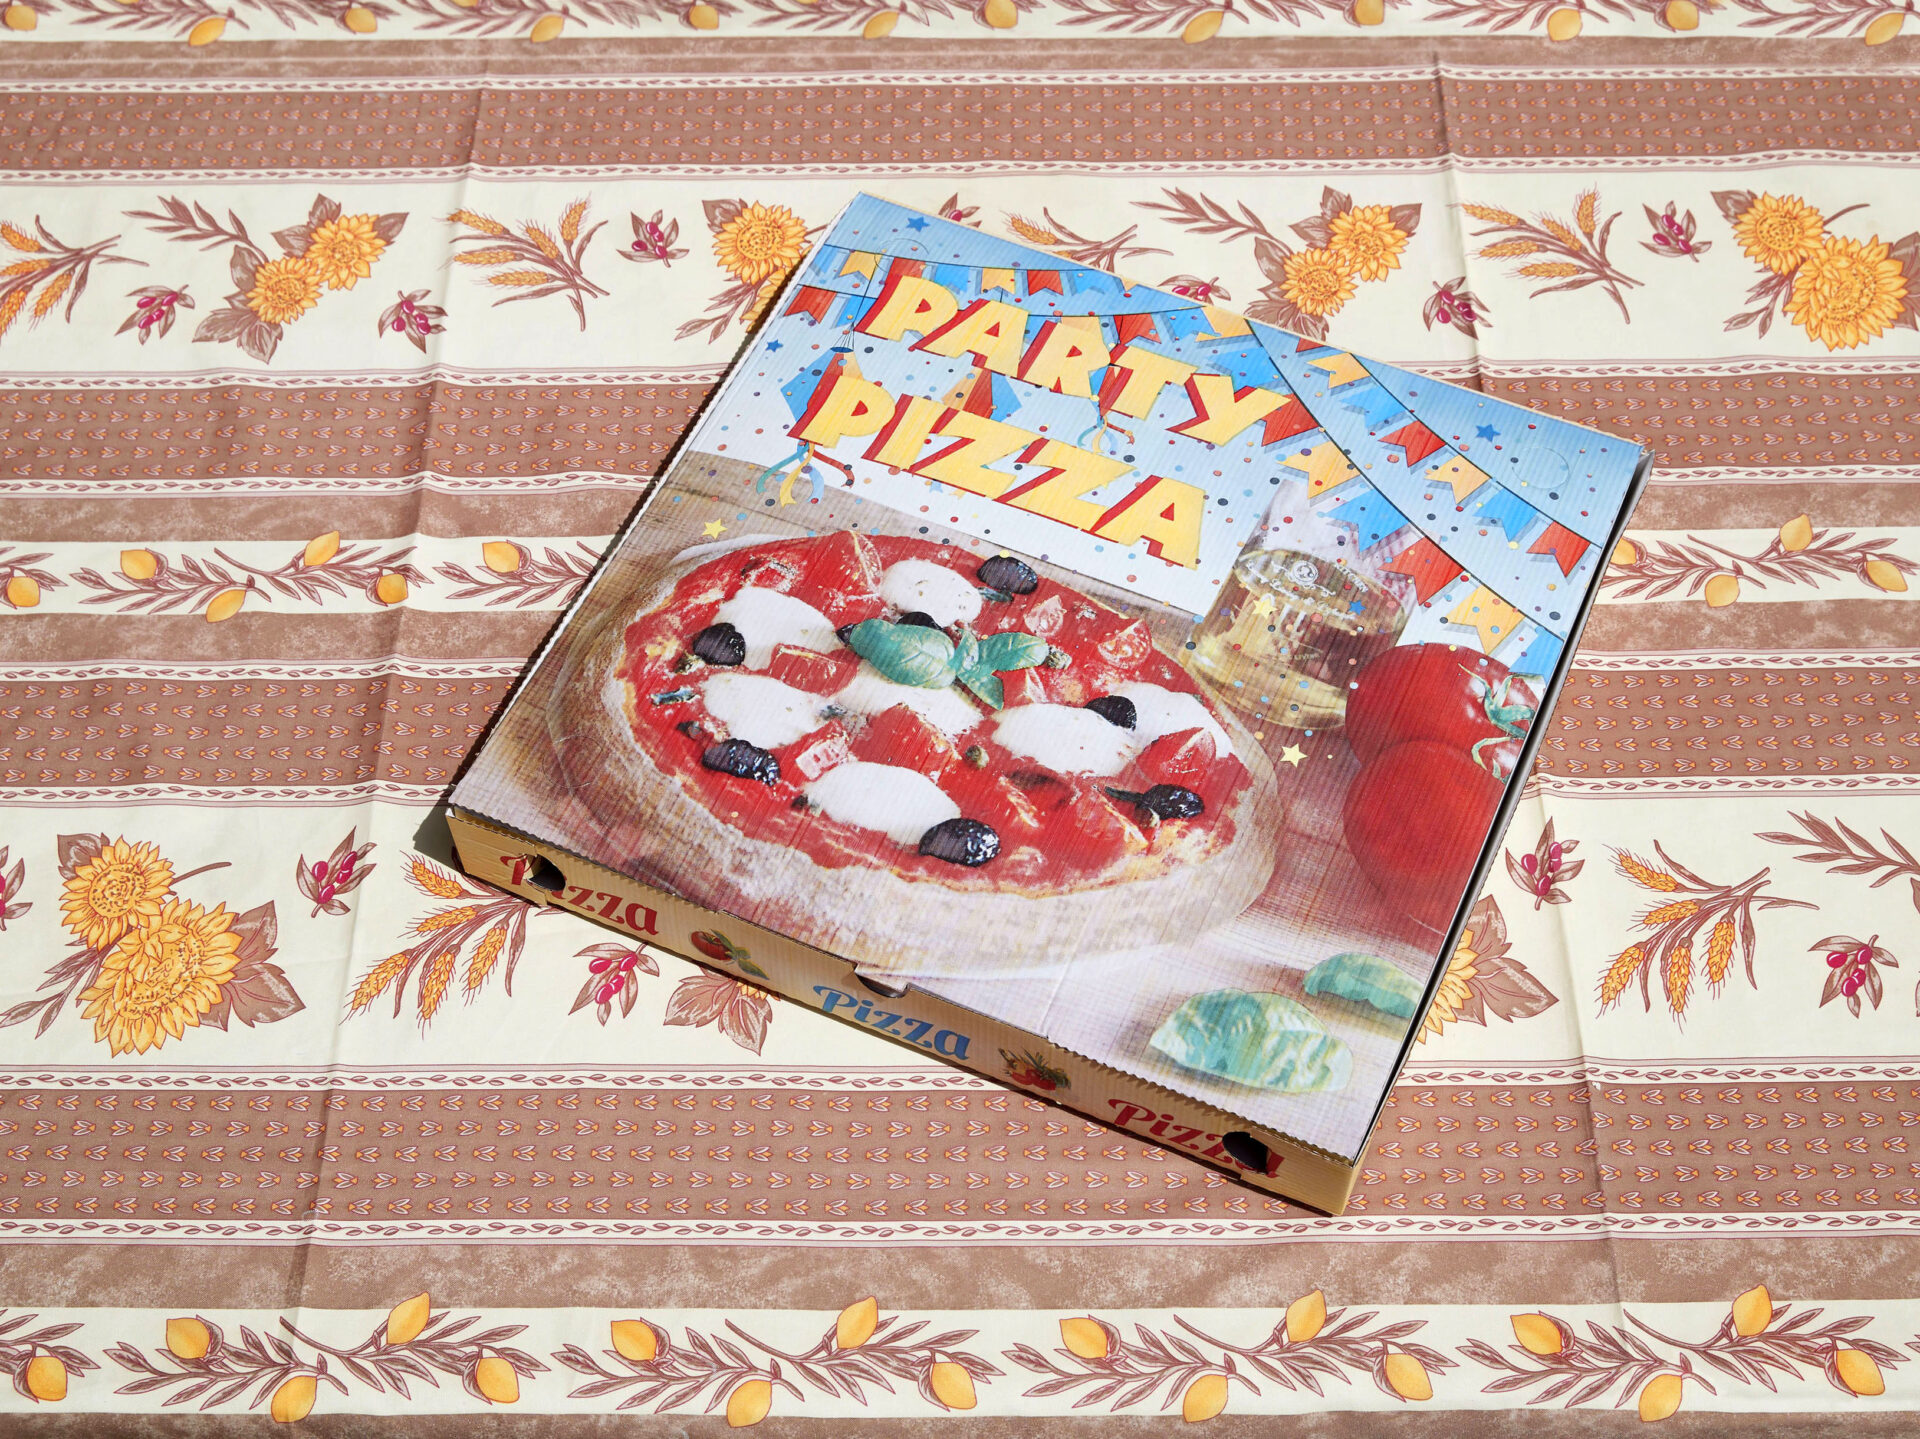 Shaw & Shaw – Party Pizza – pizza box on a patterned tablecloth – Shaw and Shaw Advertising photographers photographer photography